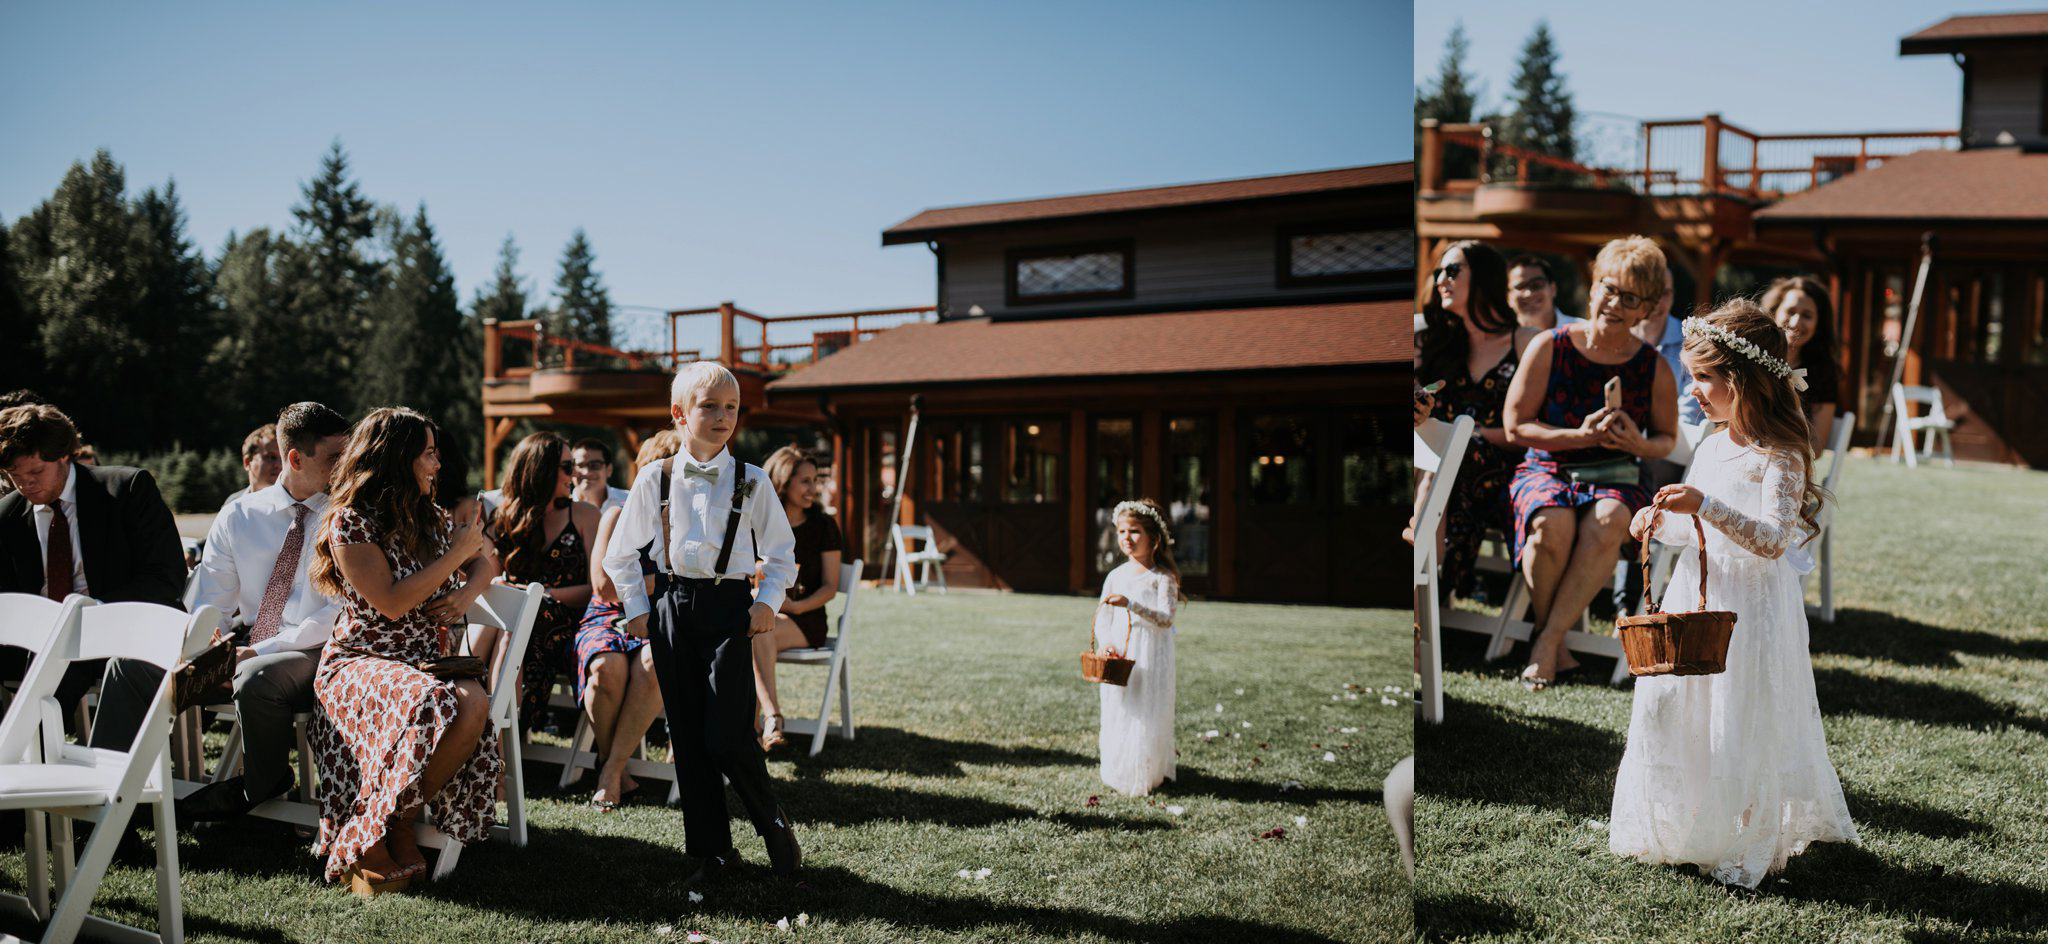 trinity-tree-farm-issaquah-washington-wedding-seattle-lifestyle-photographer-caitlyn-nikula-photography-67.jpg